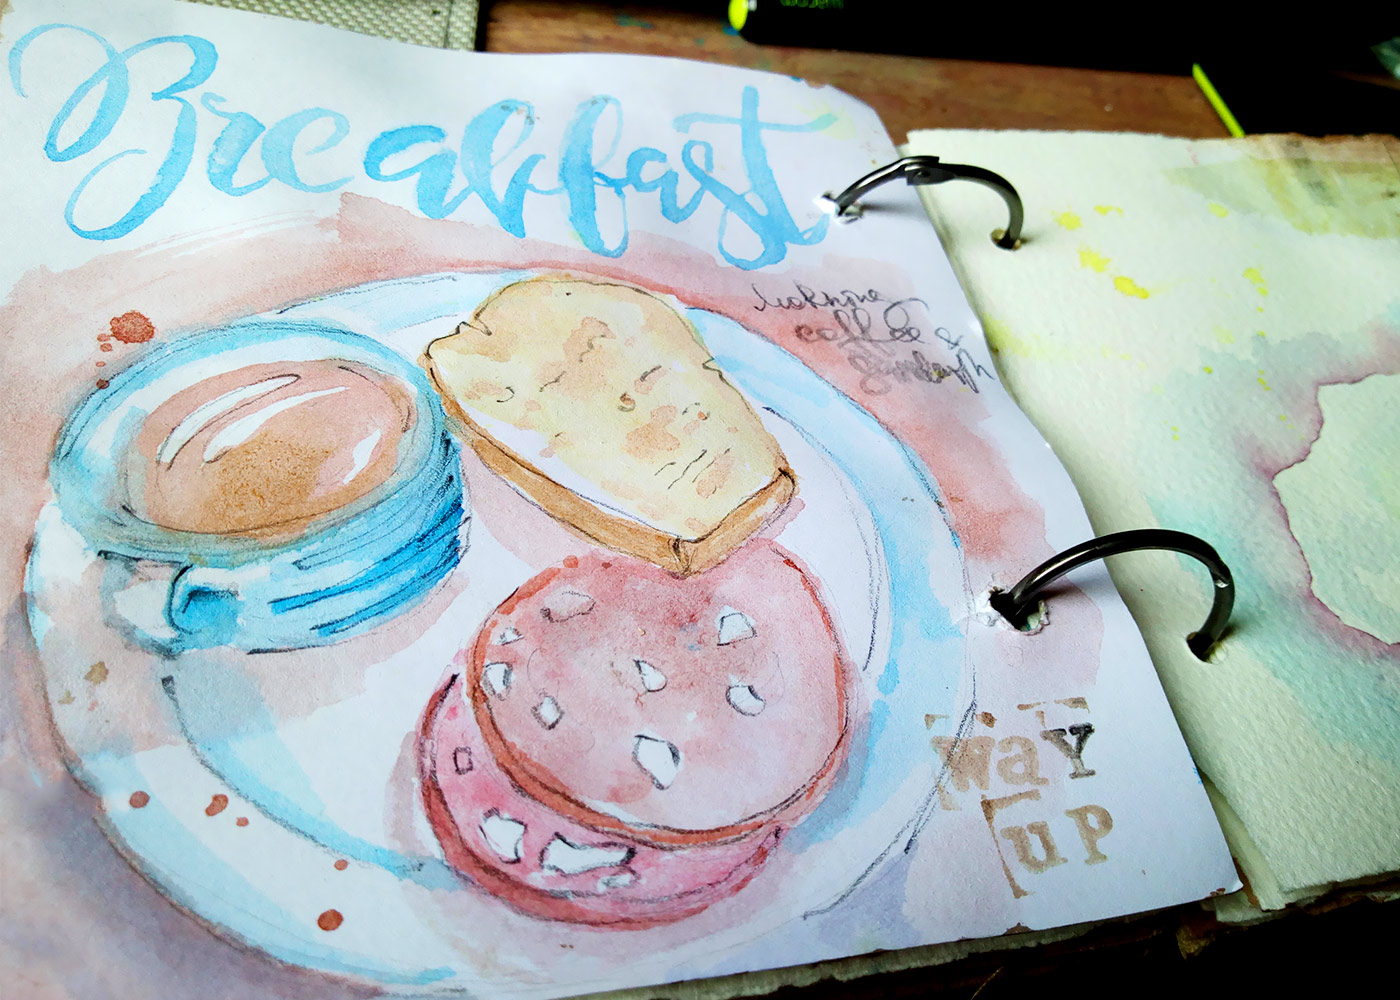 Breakfast-Watercolor